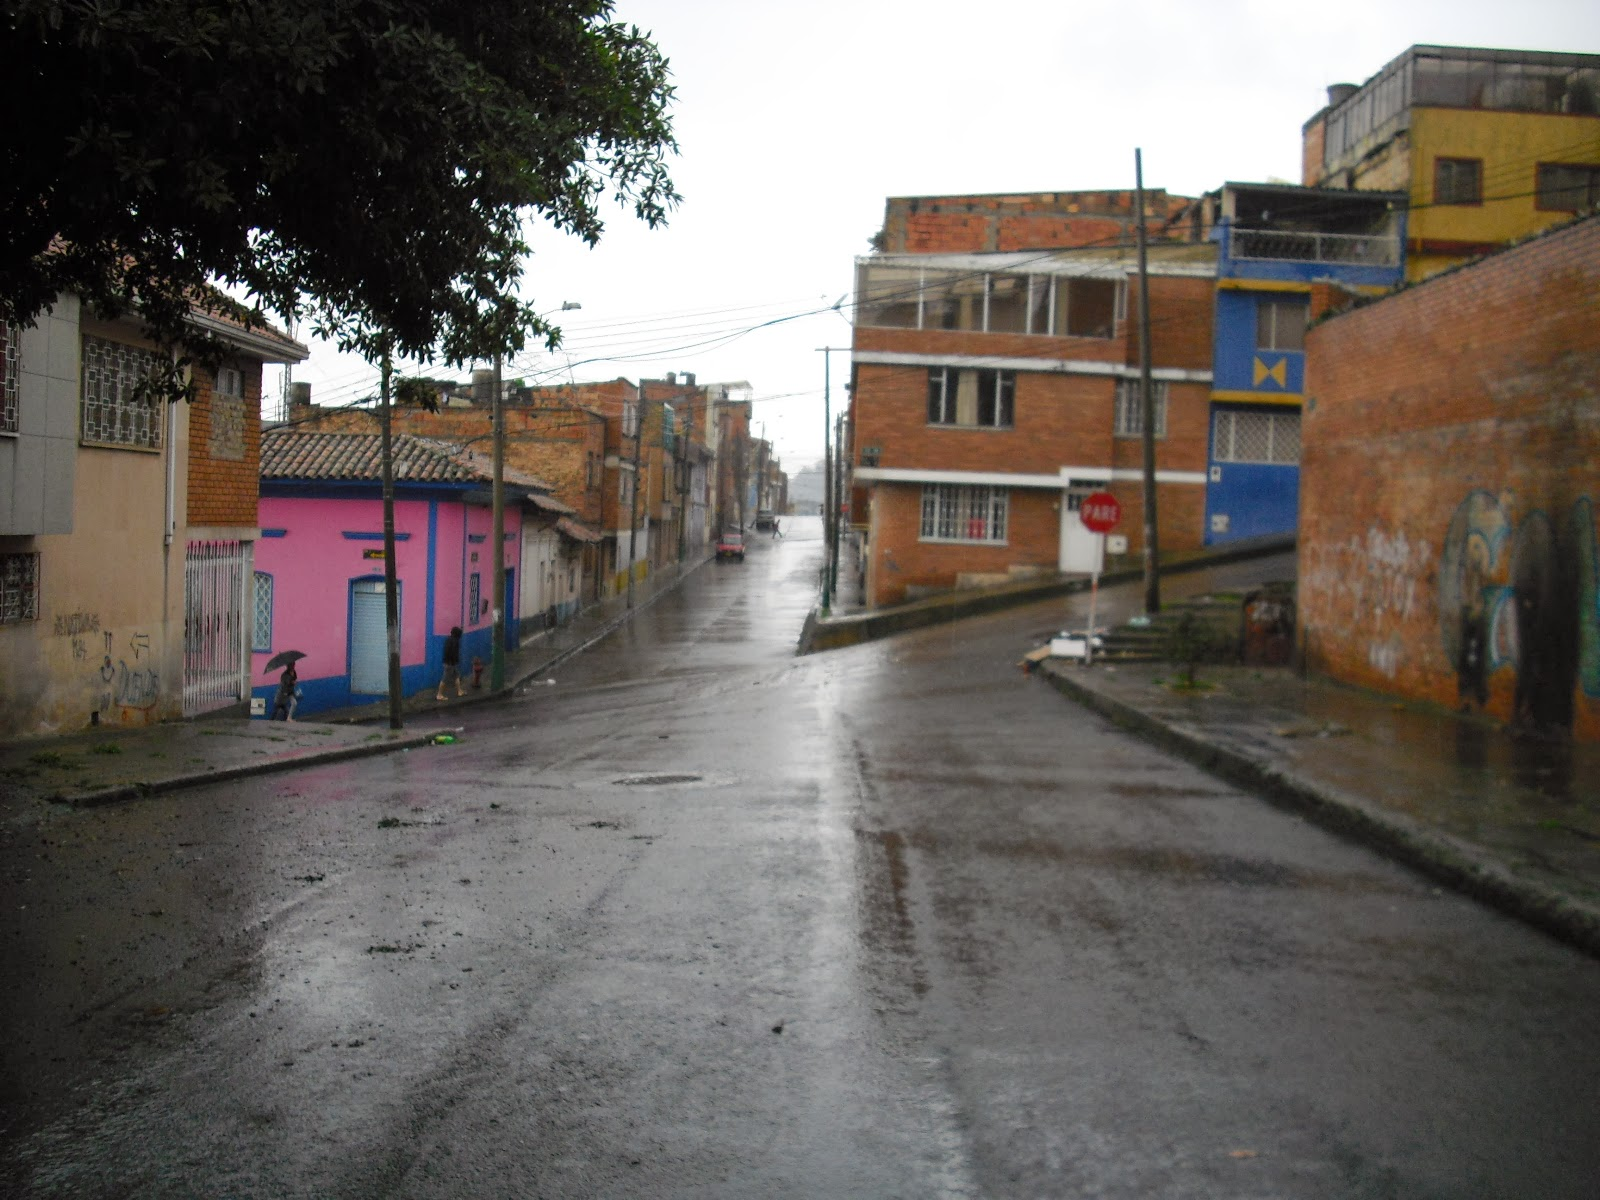 Entering one of Bogotá's 'darker sides', La Perseverancia